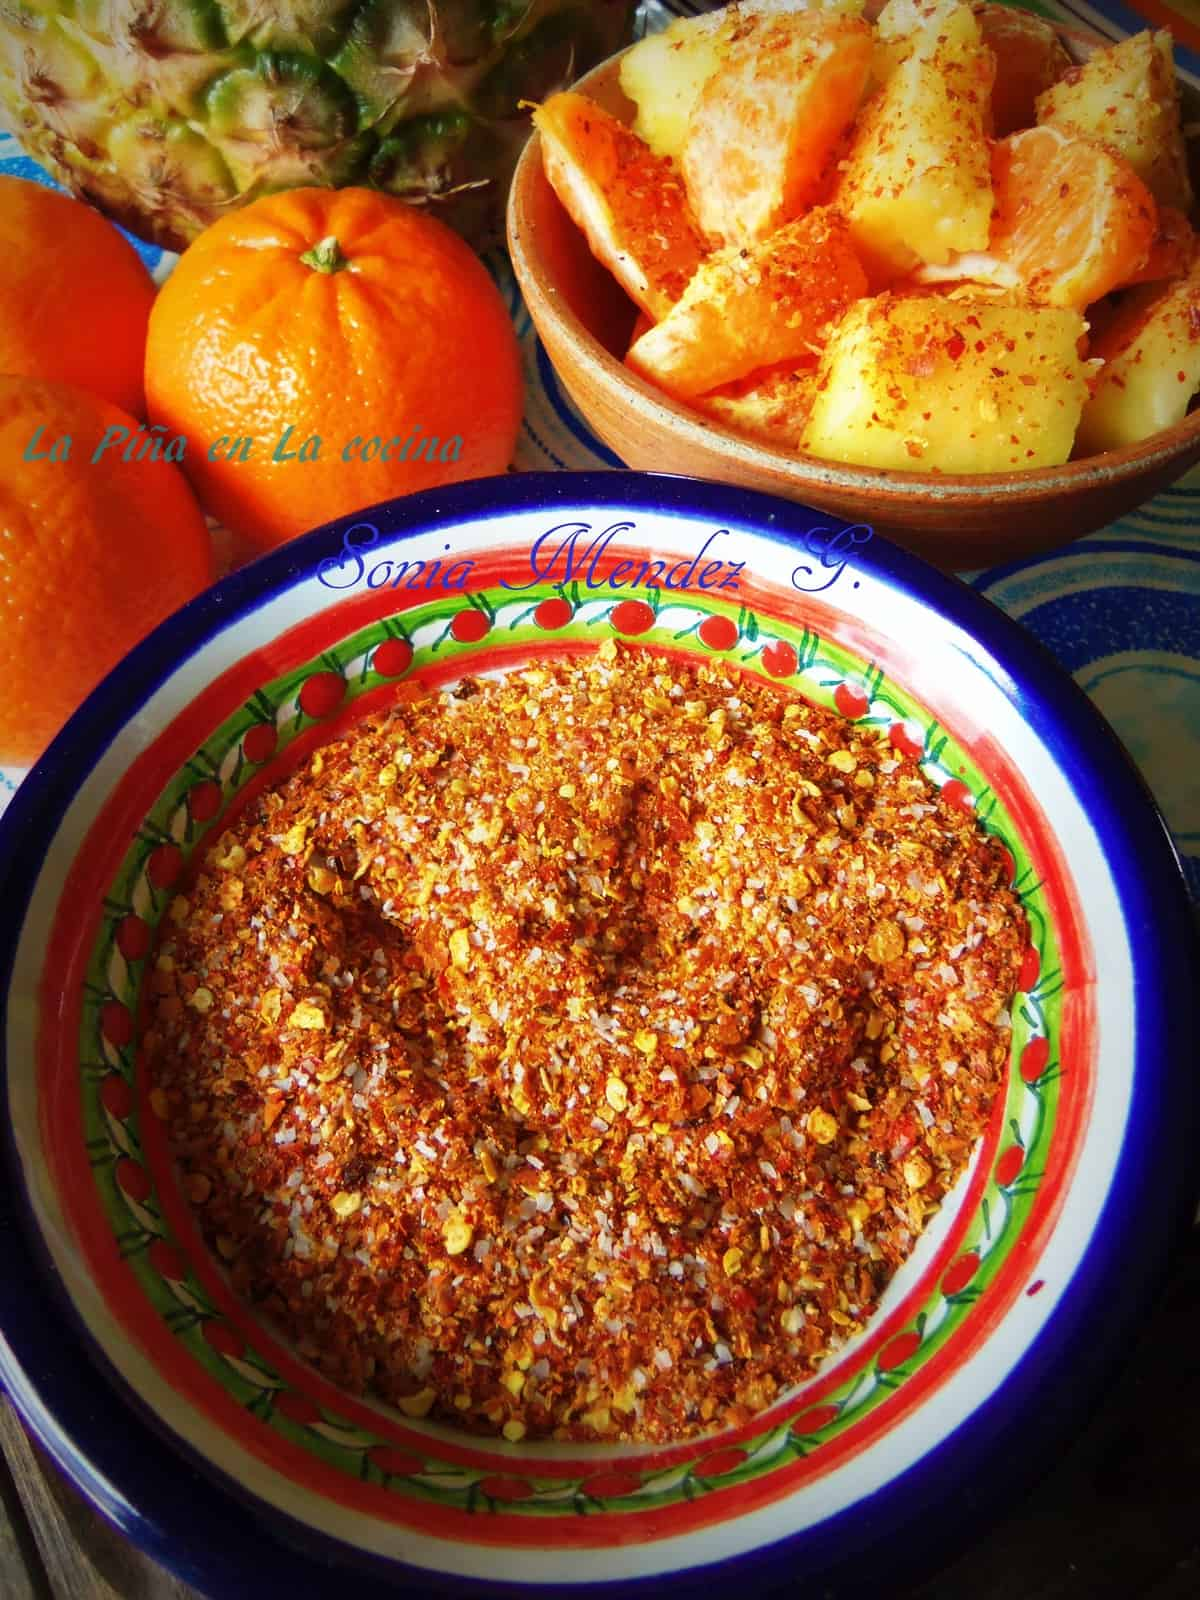 Homemade Chile Limon Seasoning Prepared with Chile de Arbol